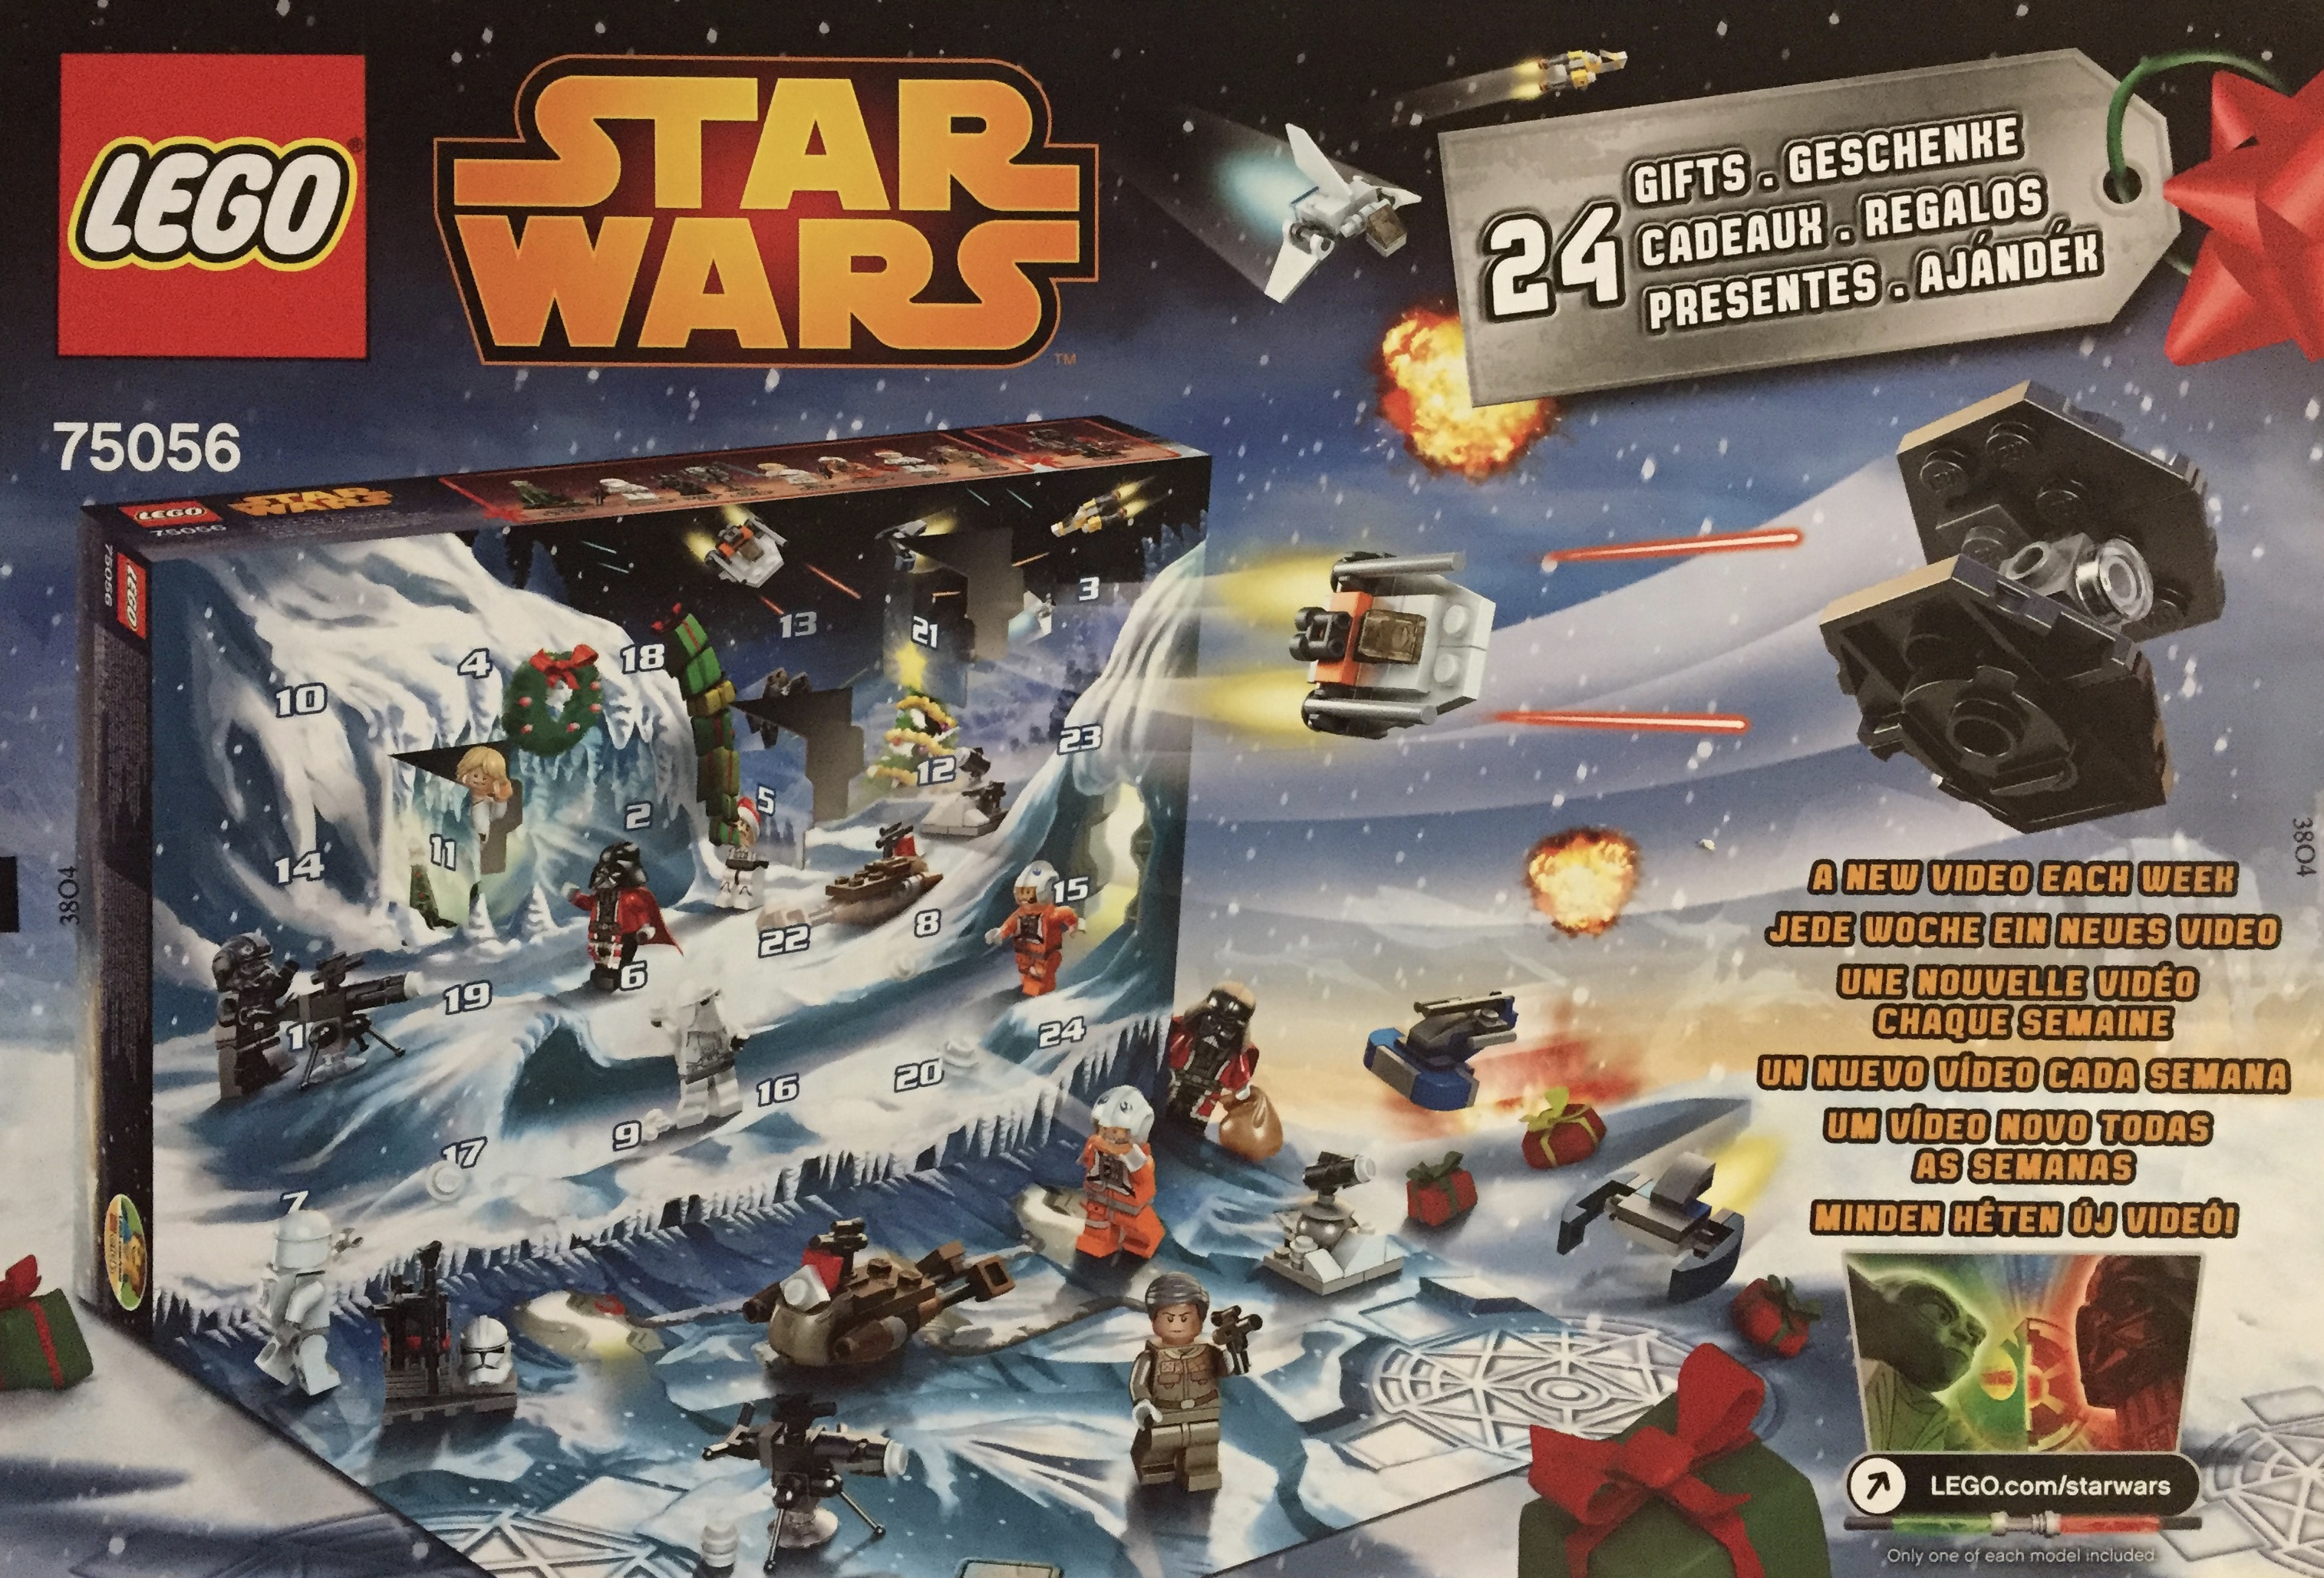 lego star wars adventskalender 75056 billiga leksaker. Black Bedroom Furniture Sets. Home Design Ideas